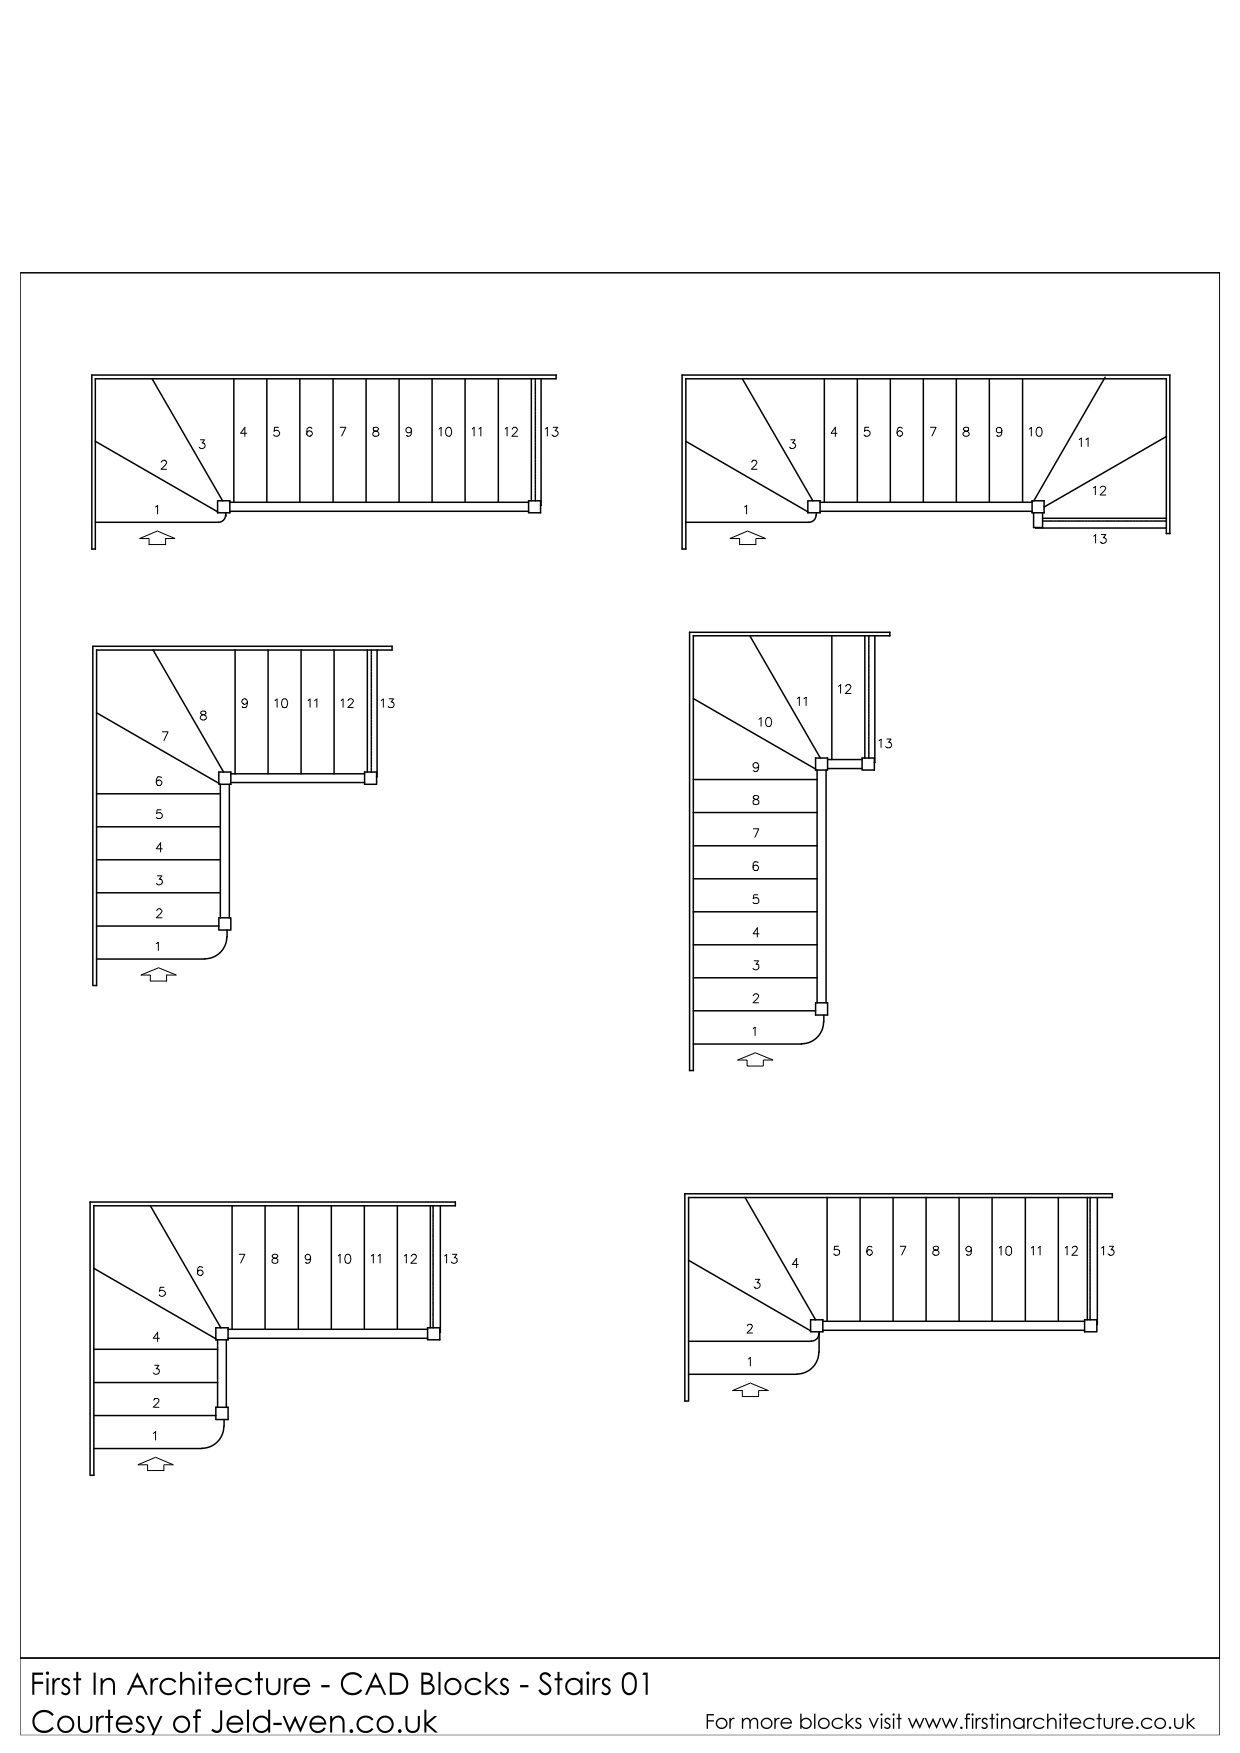 Superieur Cad Blocks Stairs 01